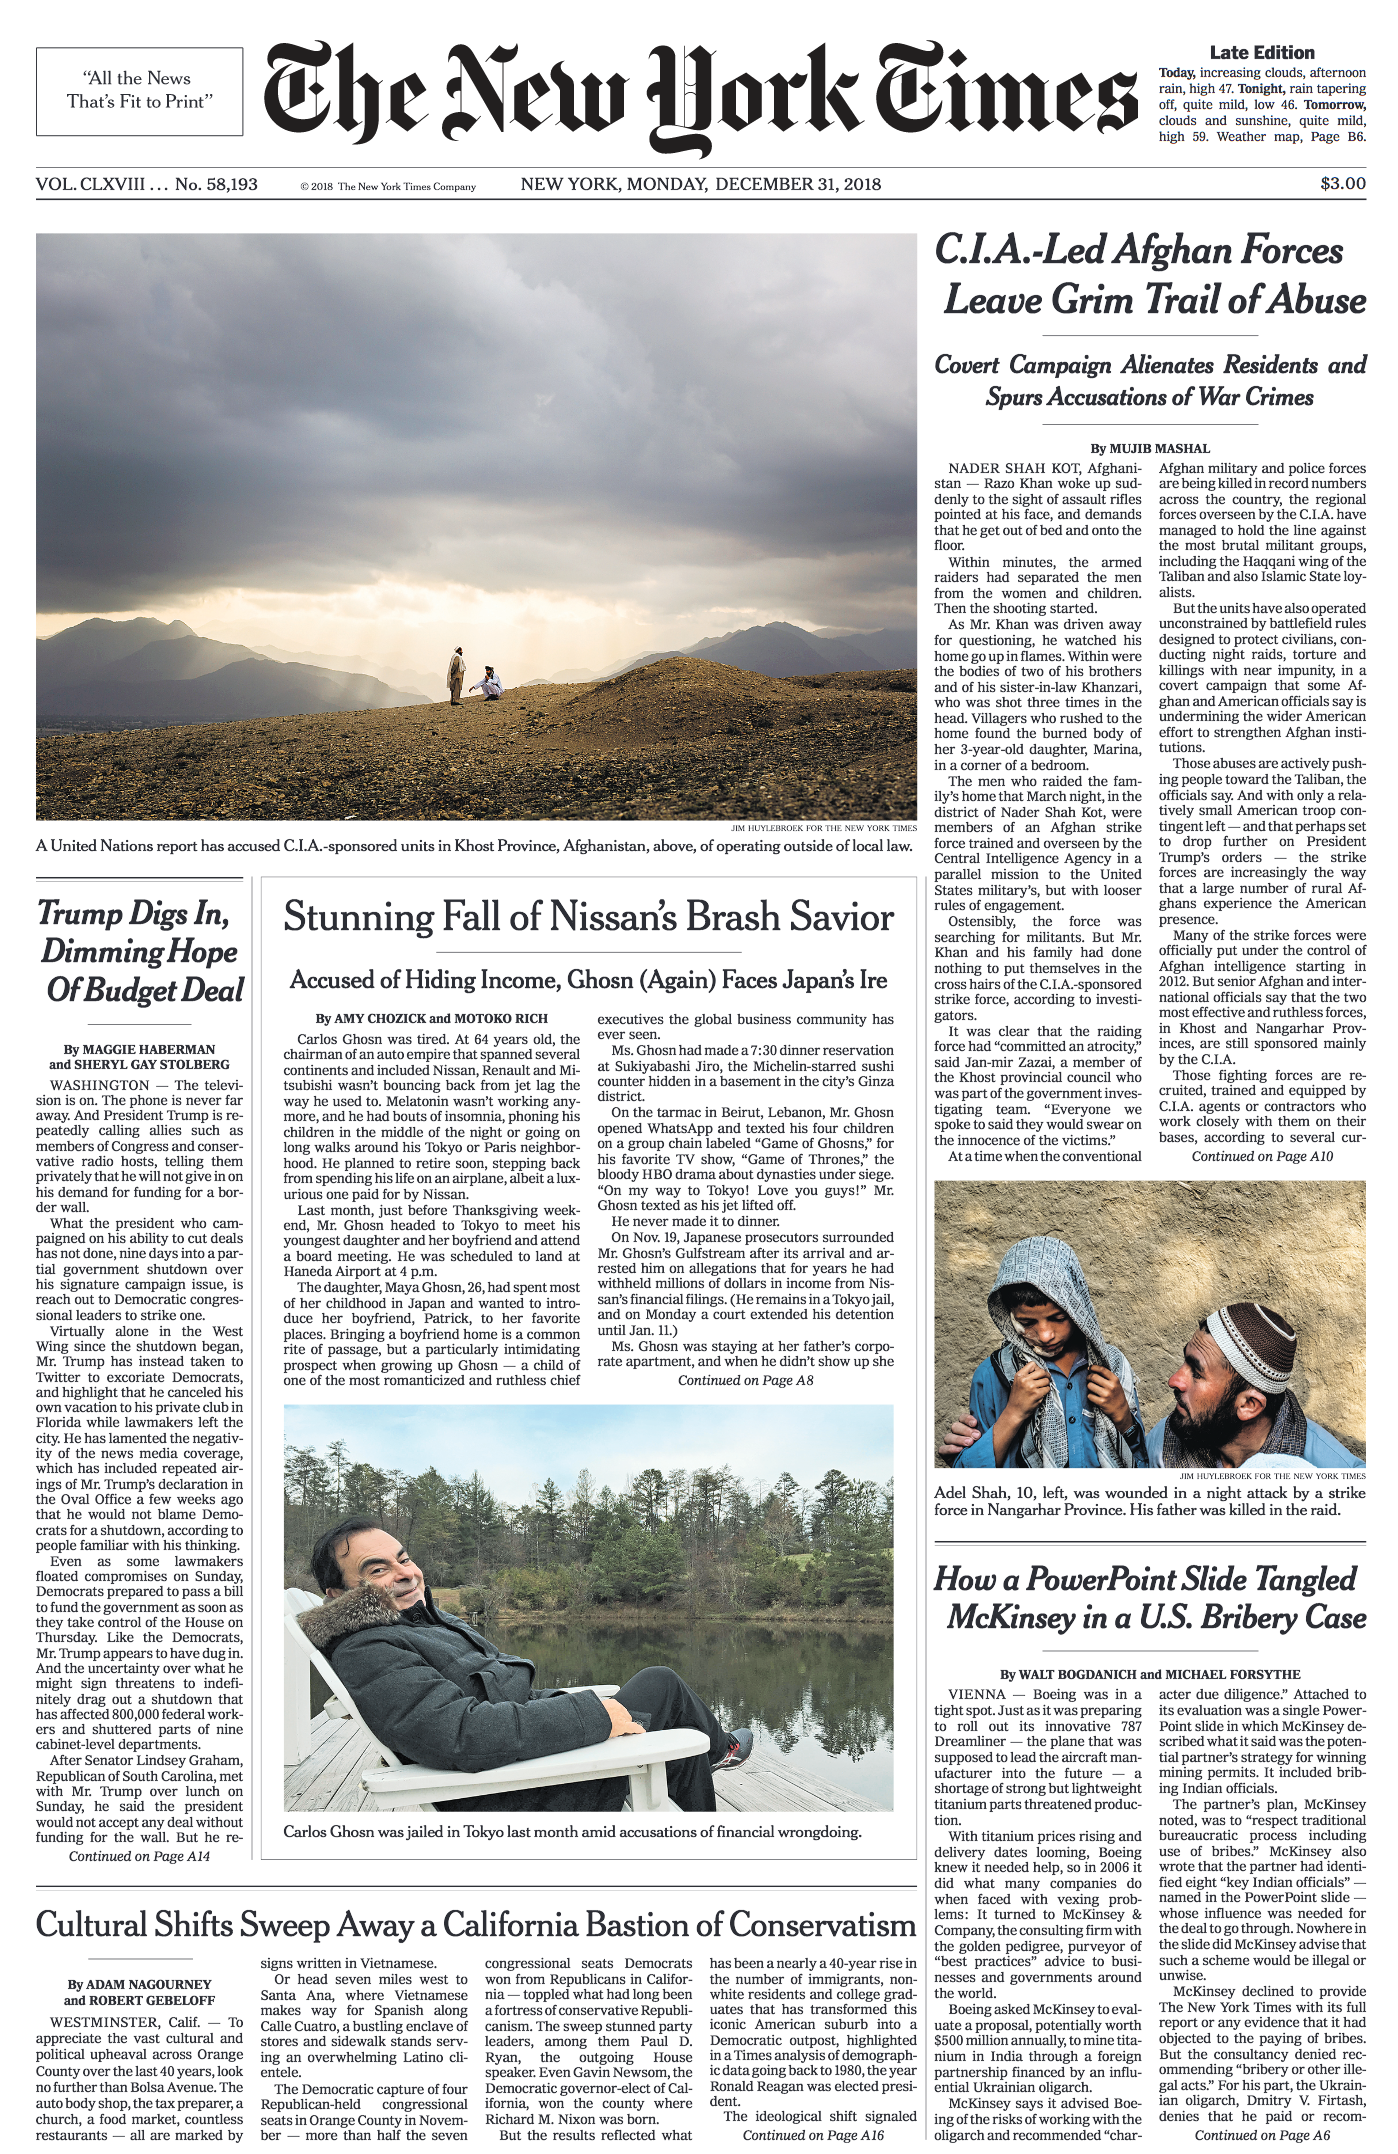 NYT_FrontPage_123118.png